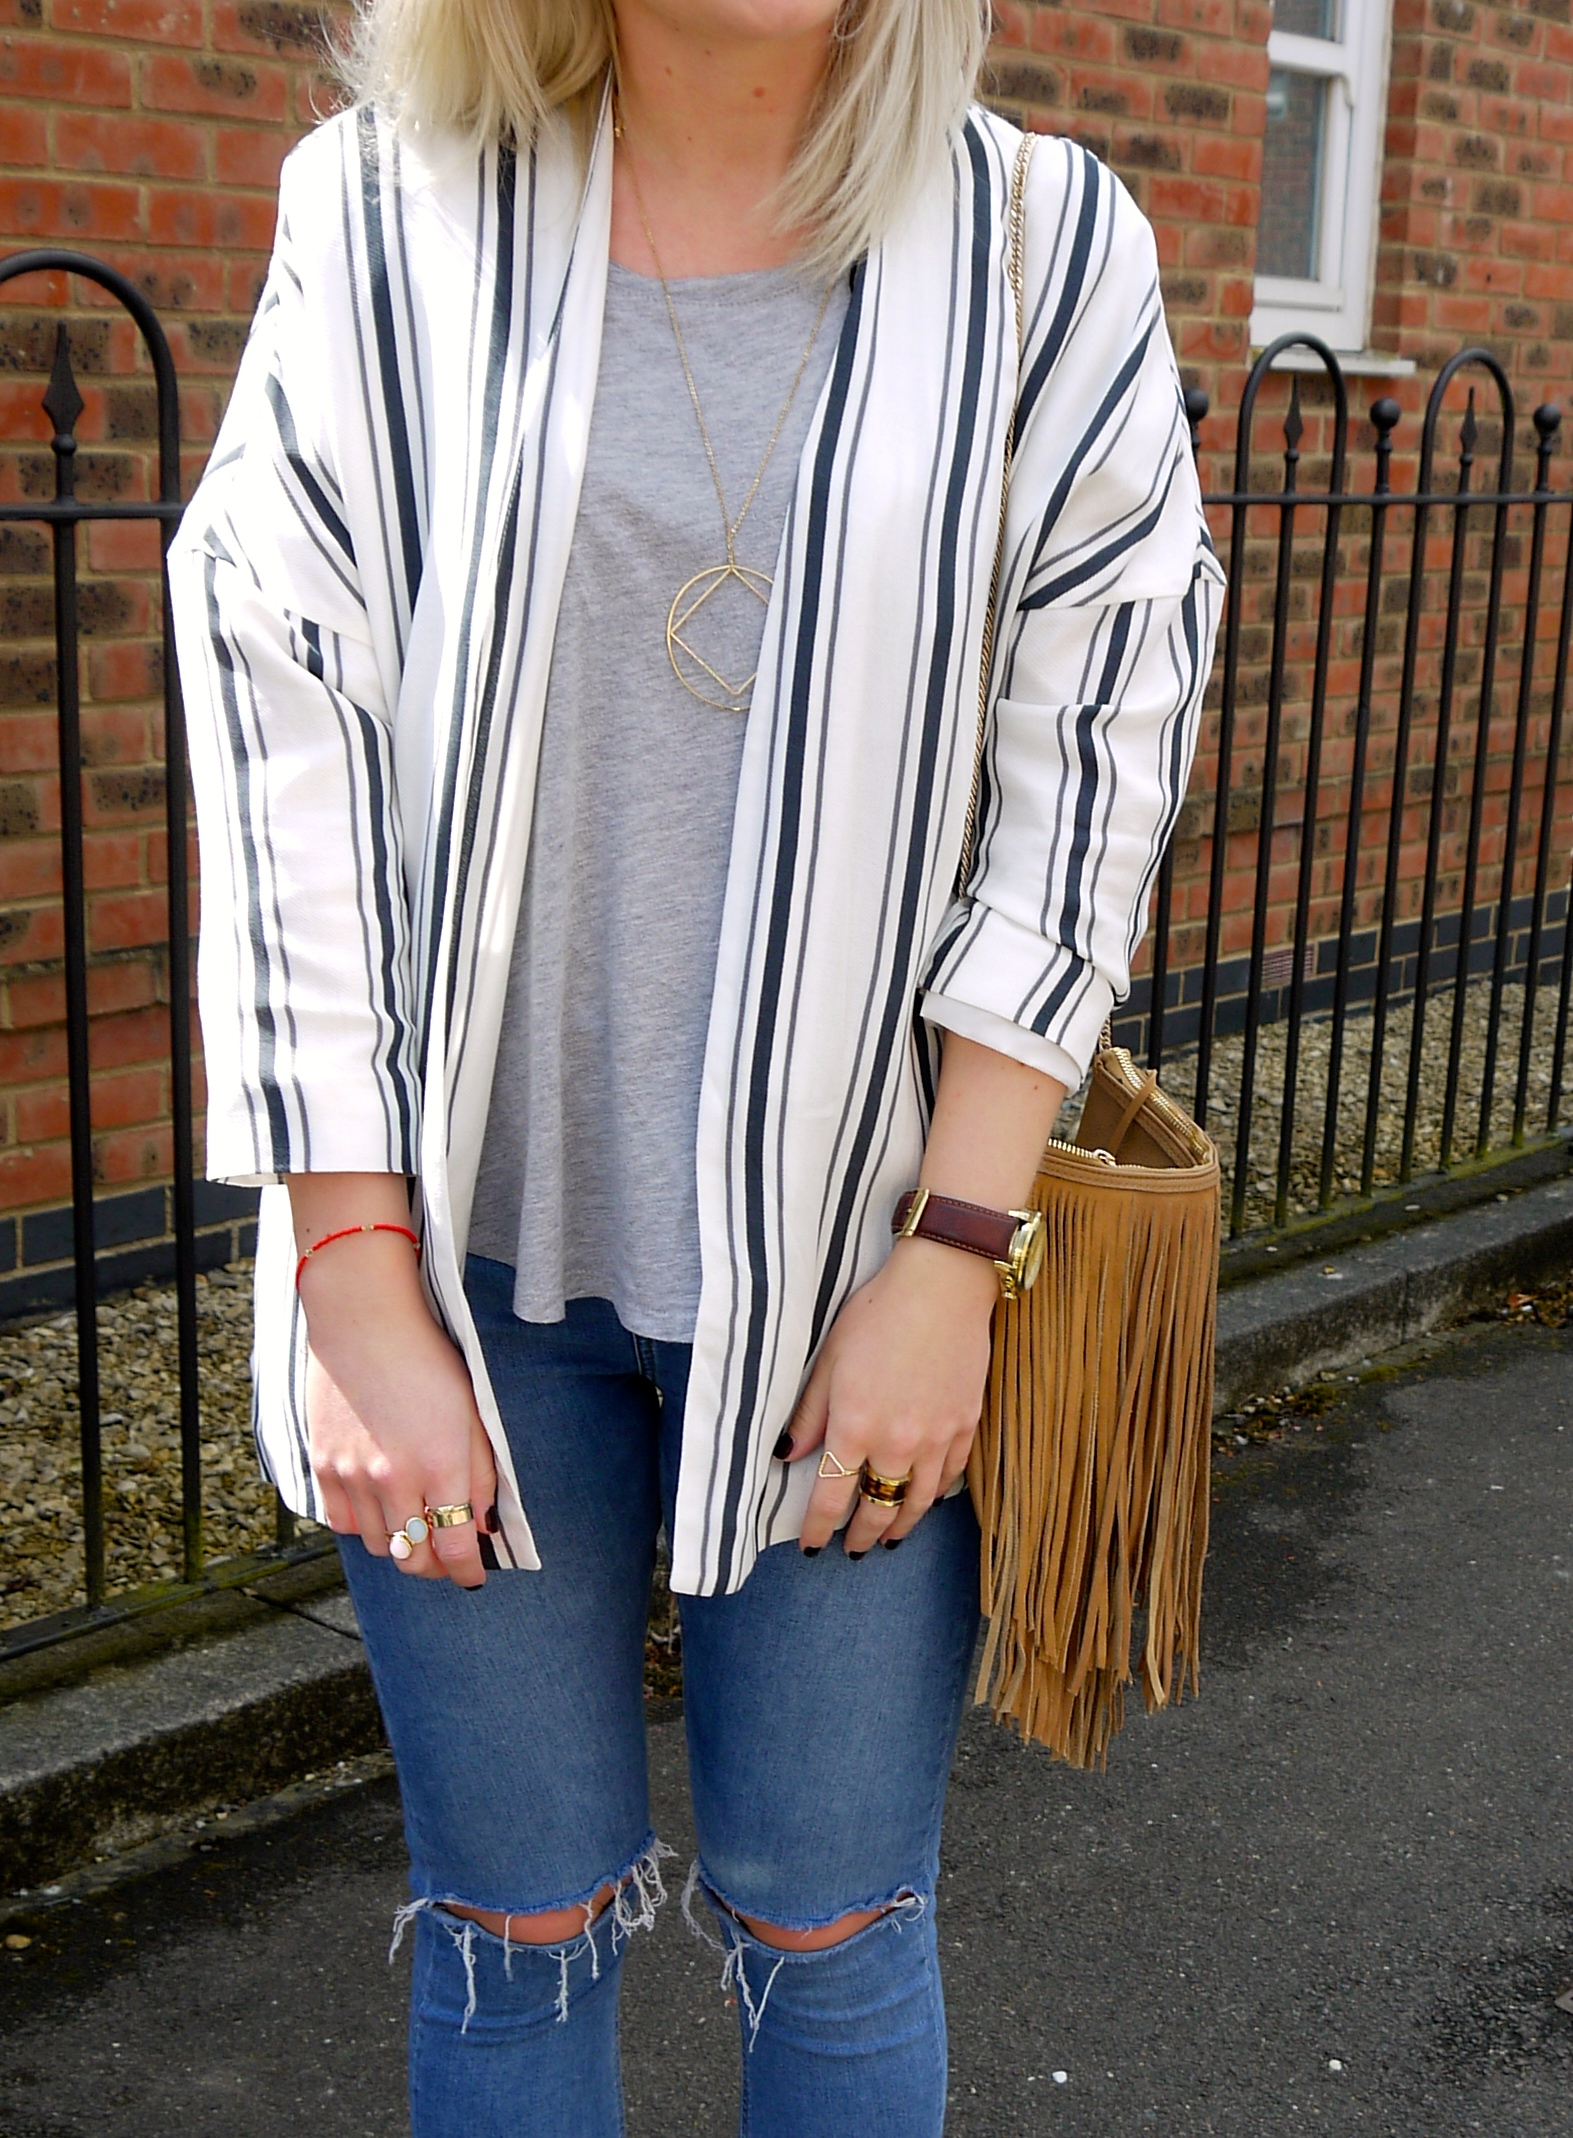 lauras little locket, laura byrnes, fashion blogger, tan tassel bag, boohoo, ripped jeans